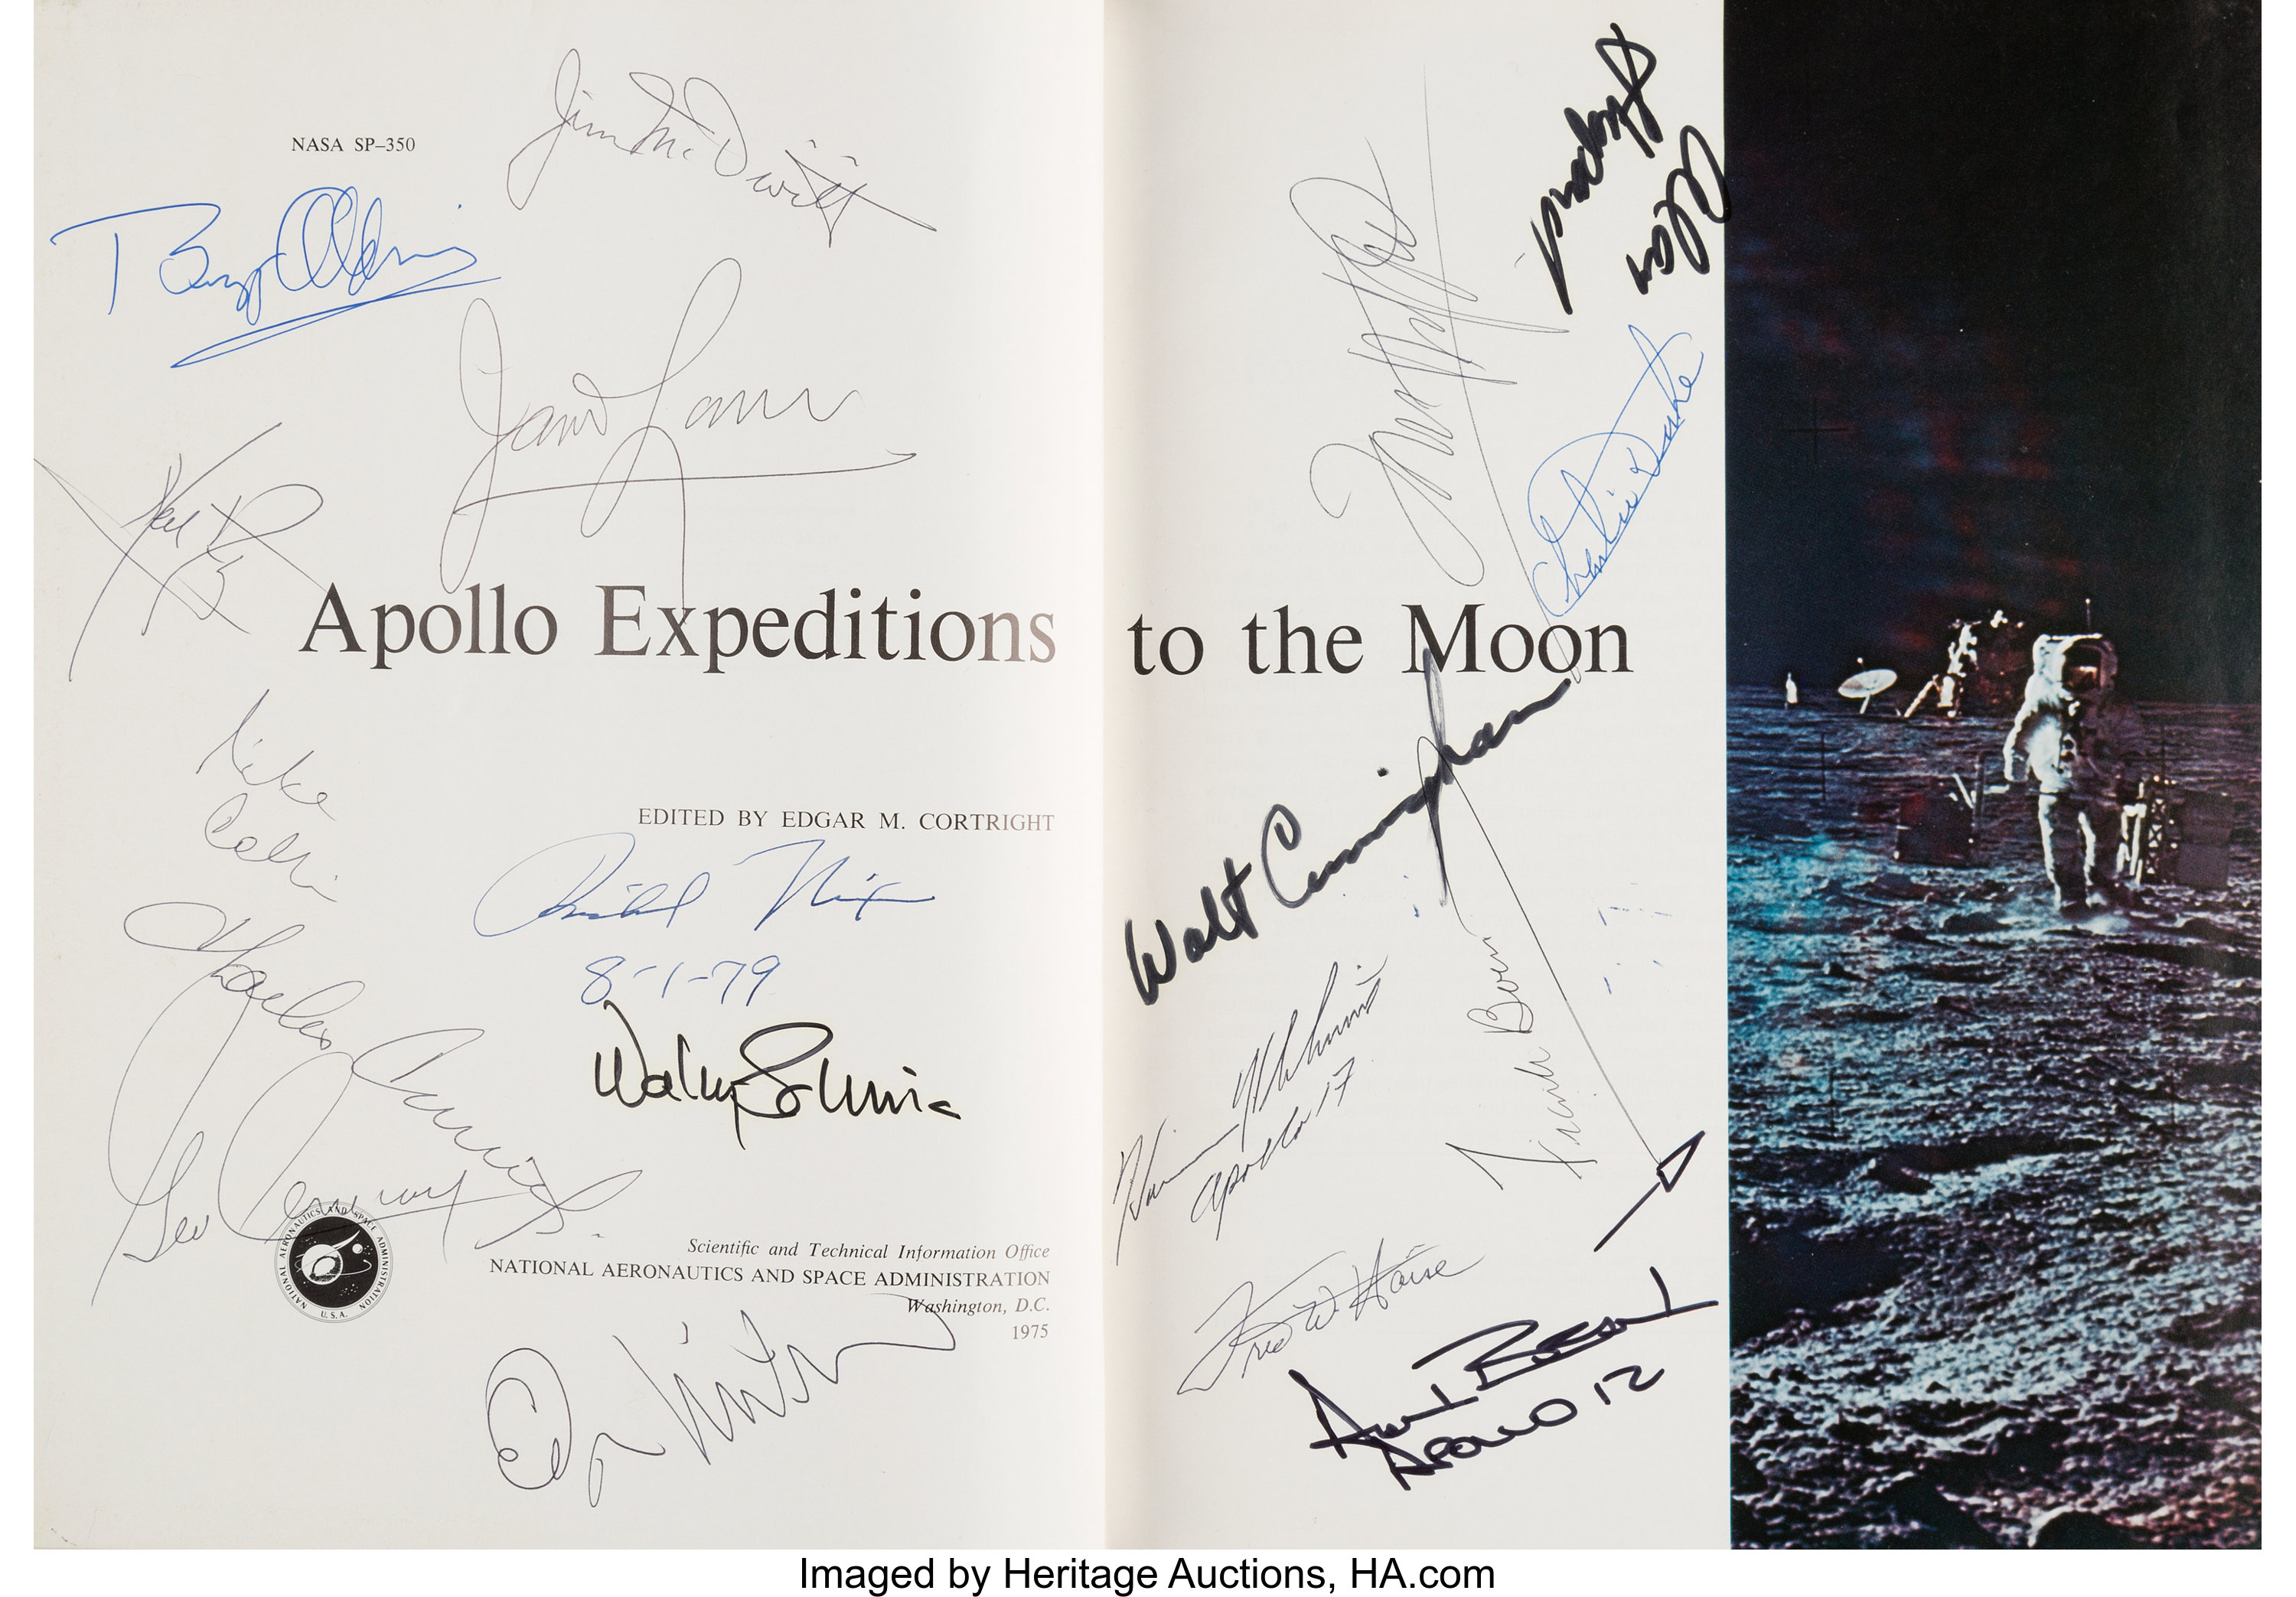 Apollo Expeditions to the Moon Book Signed by Richard Nixon